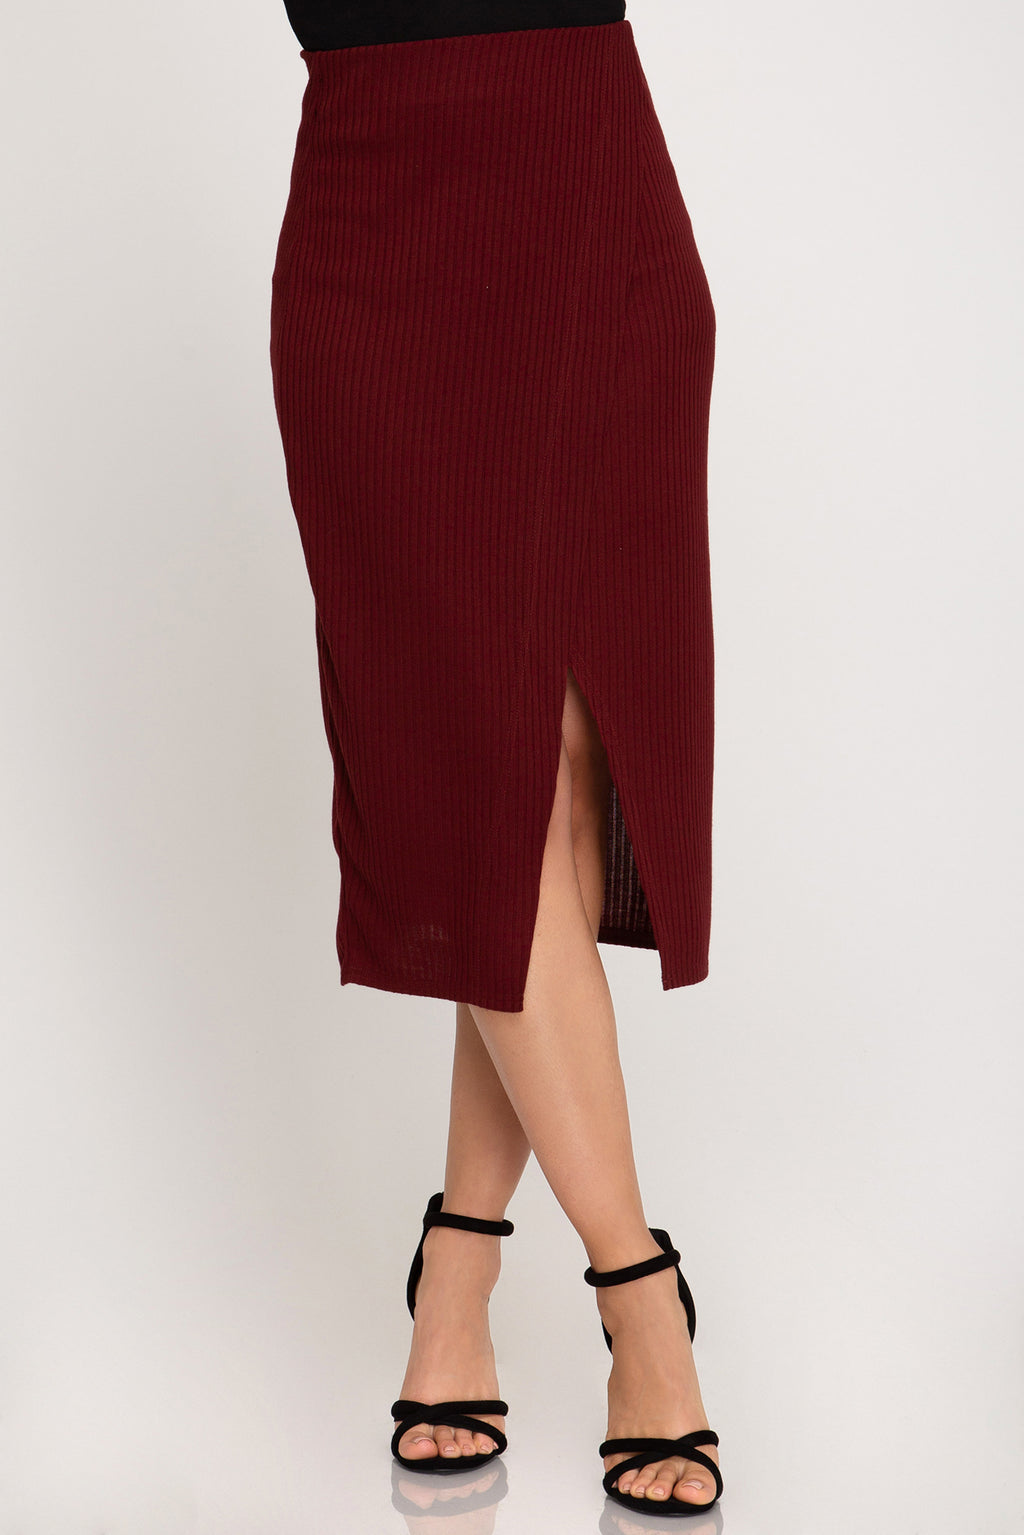 In Style Pencil Skirt